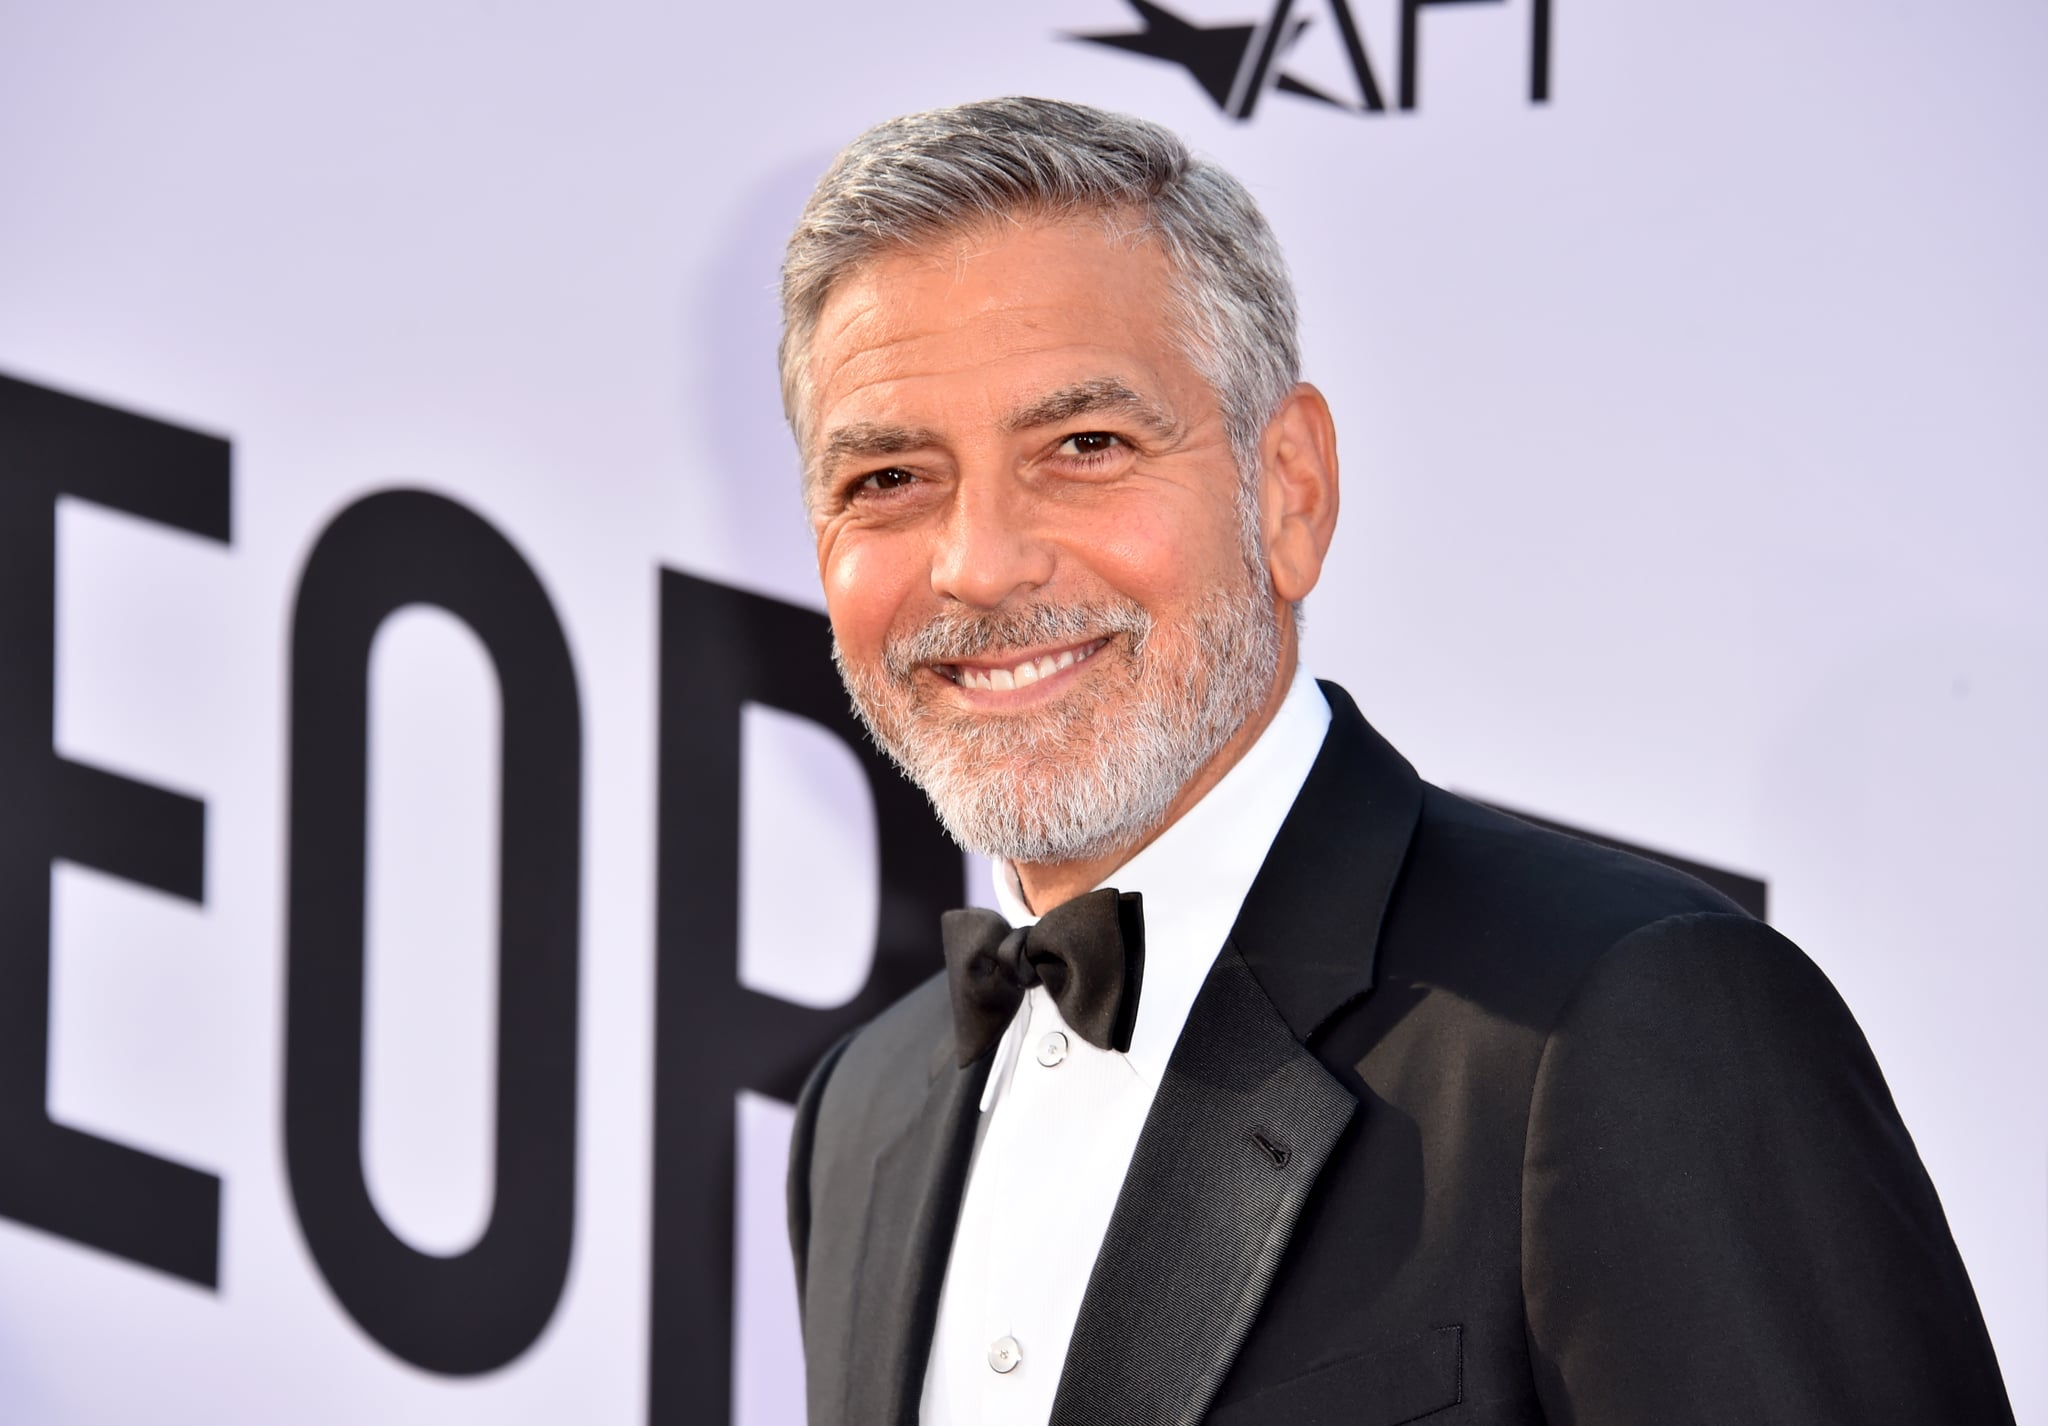 HOLLYWOOD, CA - JUNE 07:  46th AFI Life Achievement Award Recipient George Clooney attends American Film Institute's 46th Life Achievement Award Gala Tribute to George Clooney at Dolby Theatre on June 7, 2018 in Hollywood, California.  390042  (Photo by Alberto E. Rodriguez/Getty Images for Turner )